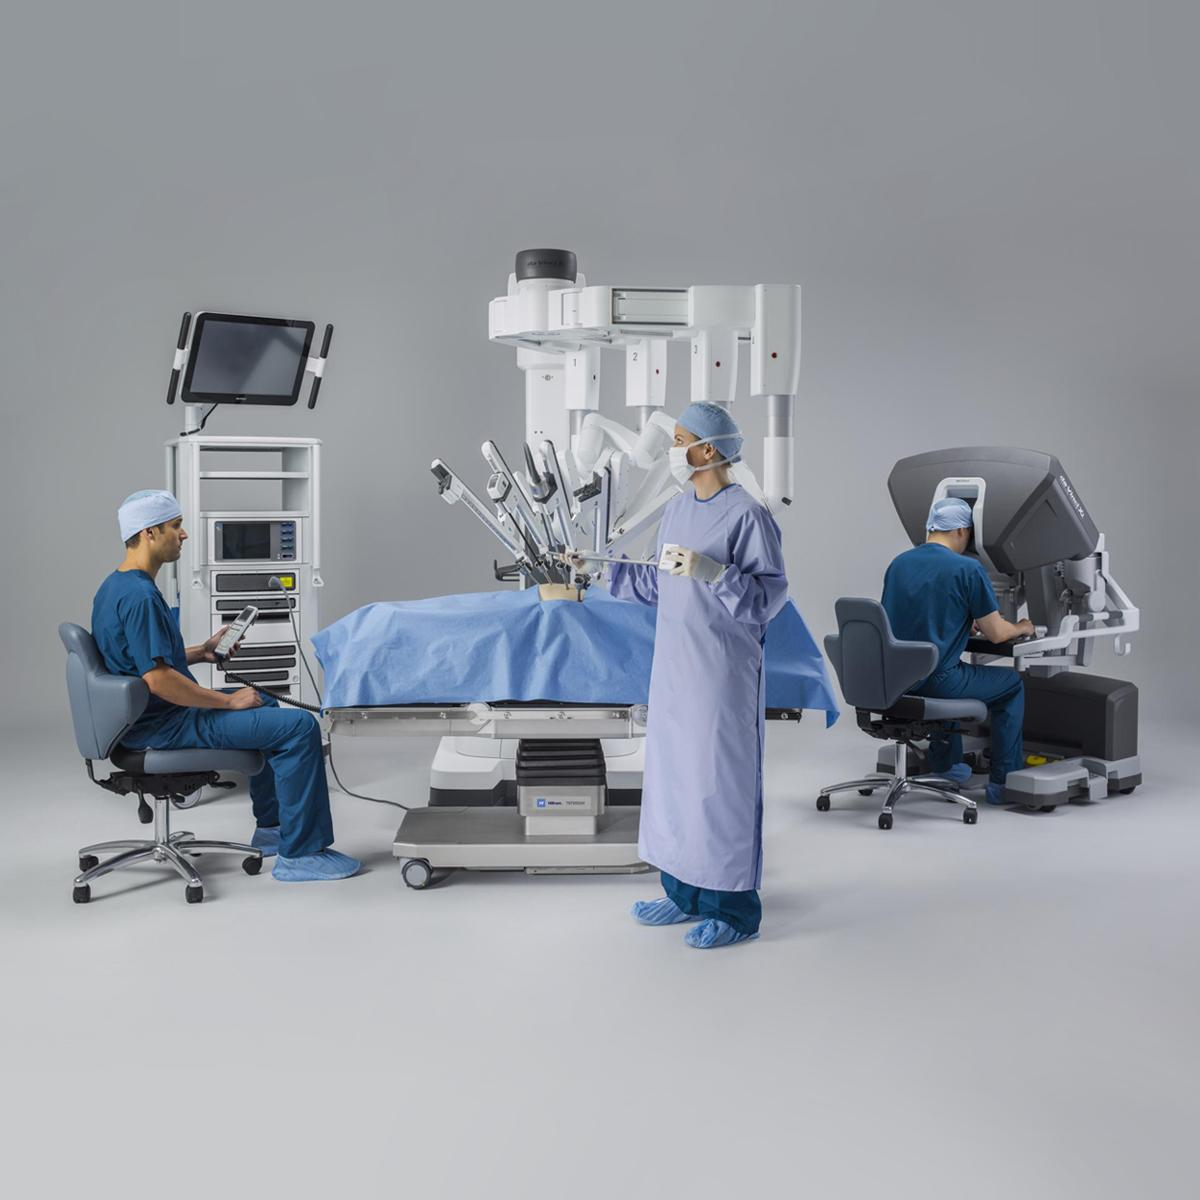 TS 7000dV, Intuitive Clinical Set-up